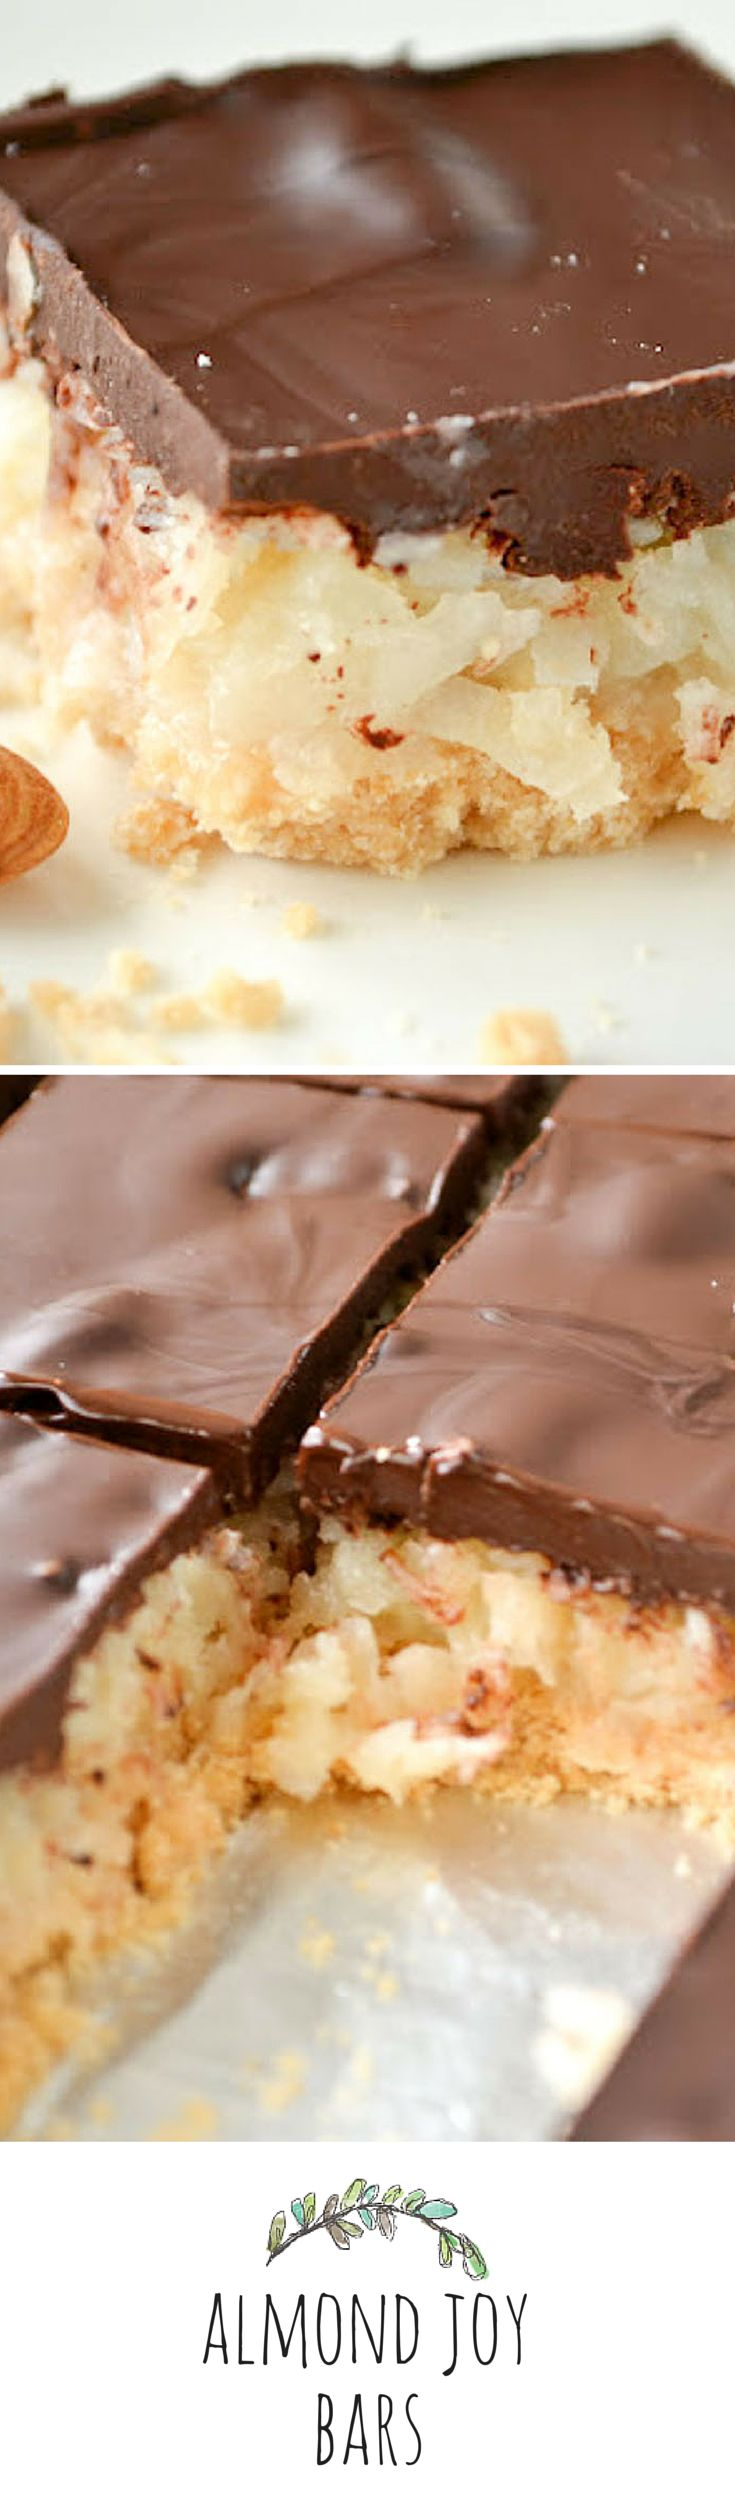 If you love the candy bar, you'll flip over these!